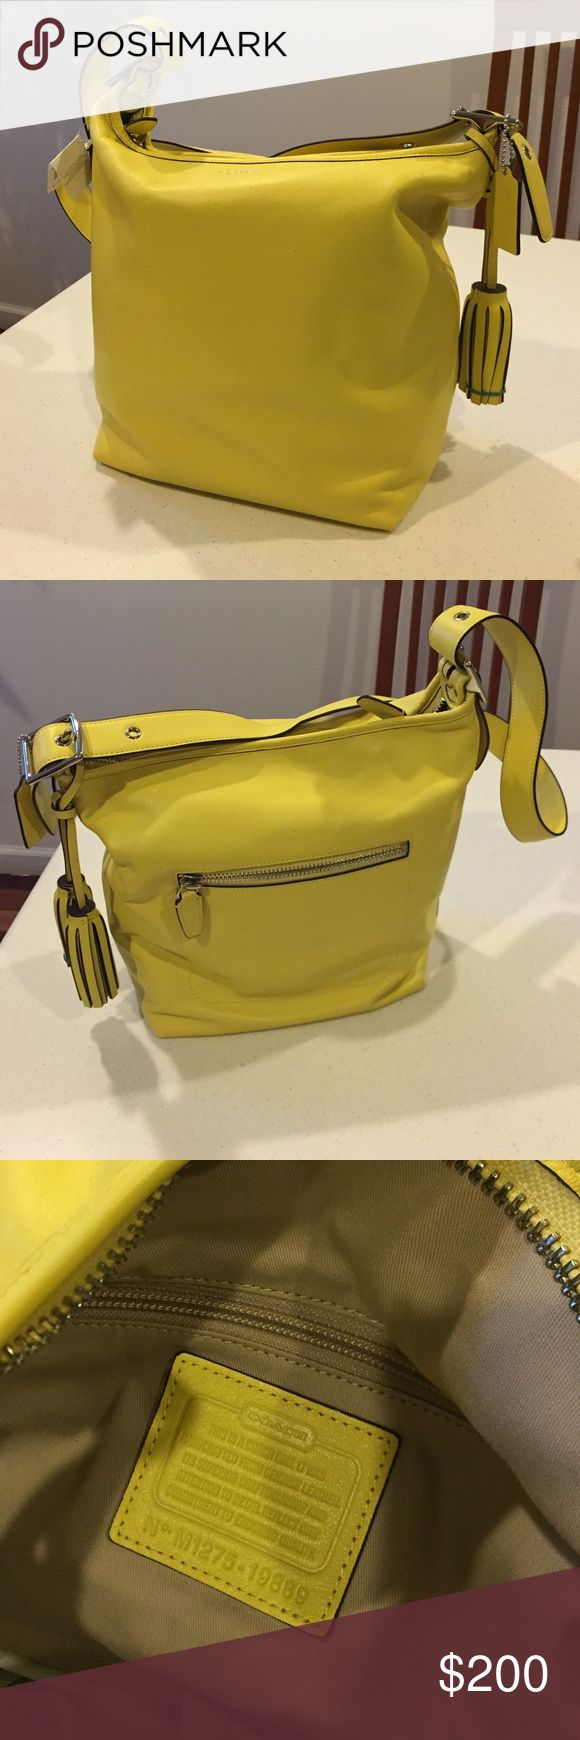 NWT Coach Legacy Leather Duffel Bag Lemon NWT Coach Legacy Leather Duffel Bag Lemon. Has small light dot on the side of the bag. Not noticeable. Straps are adjustable. Tassels are in perfect condition. Comes with dust bag. Beautiful yellow color. Coach Bags Crossbody Bags